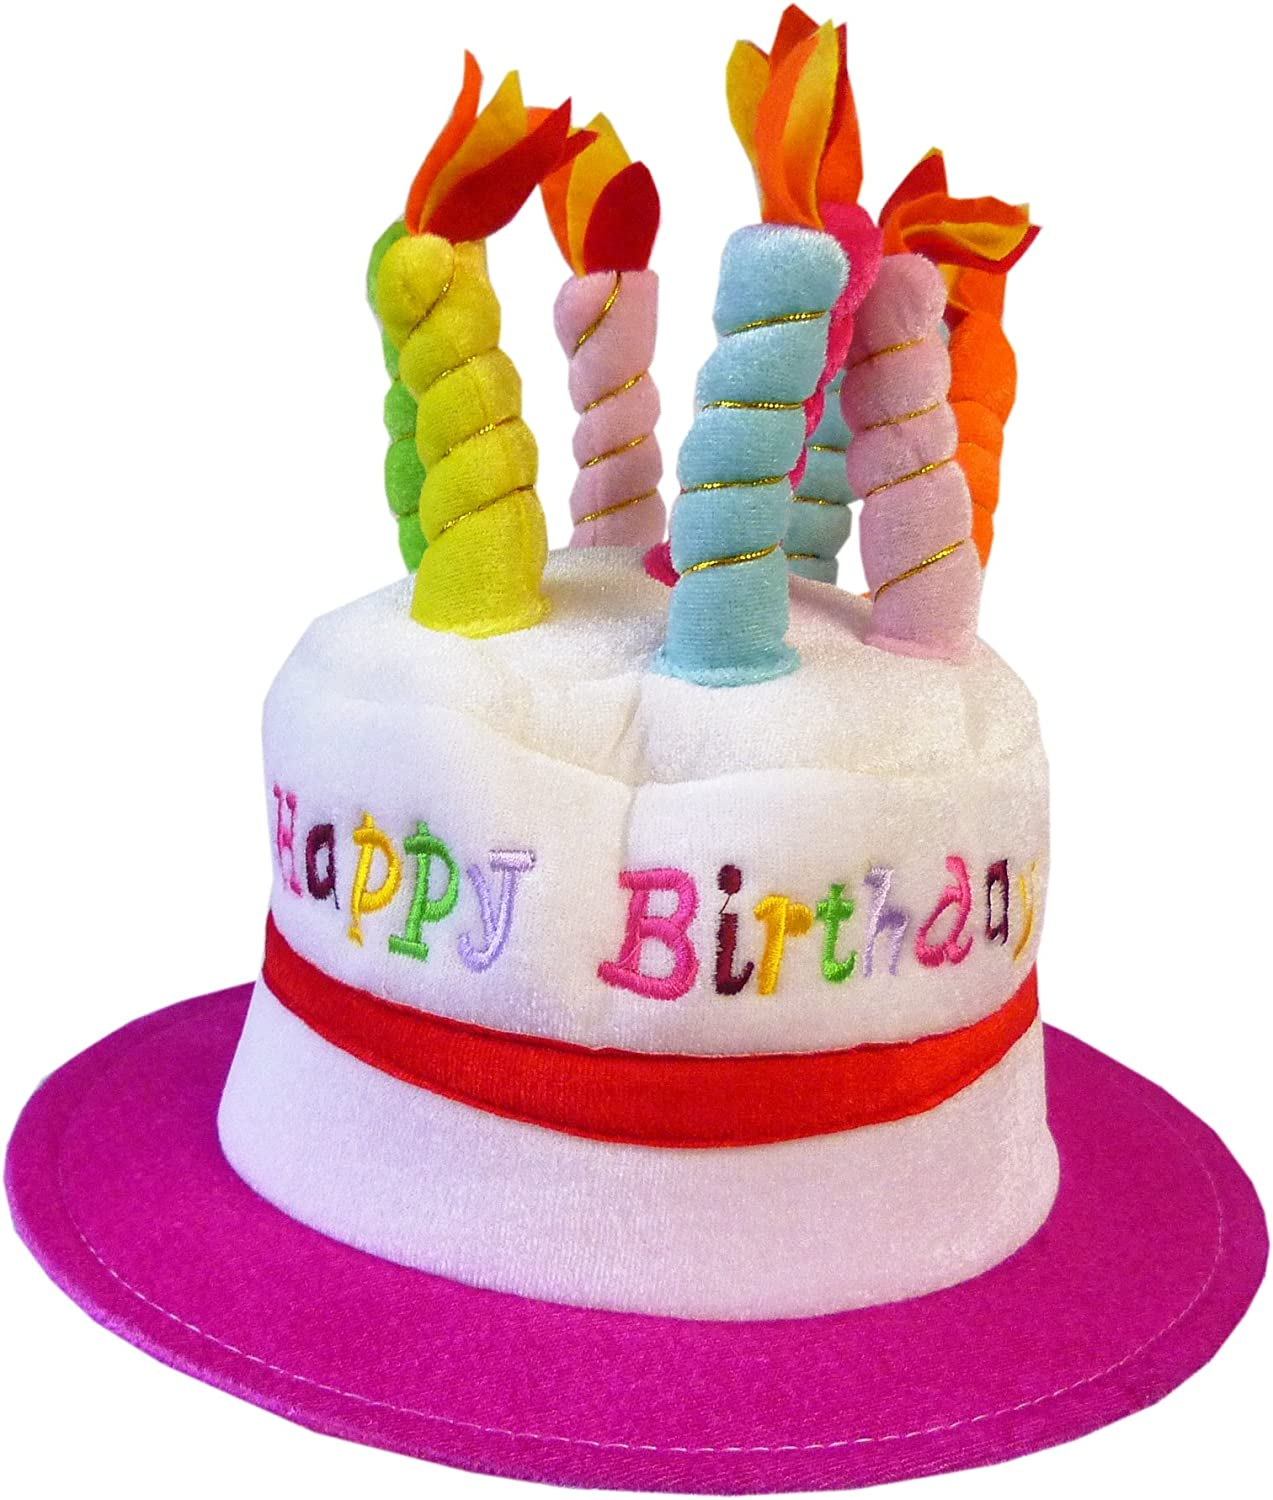 Incredible Amazon Com Out Of The Blue Adult Novelty Birthday Cake Hat Pink Funny Birthday Cards Online Alyptdamsfinfo